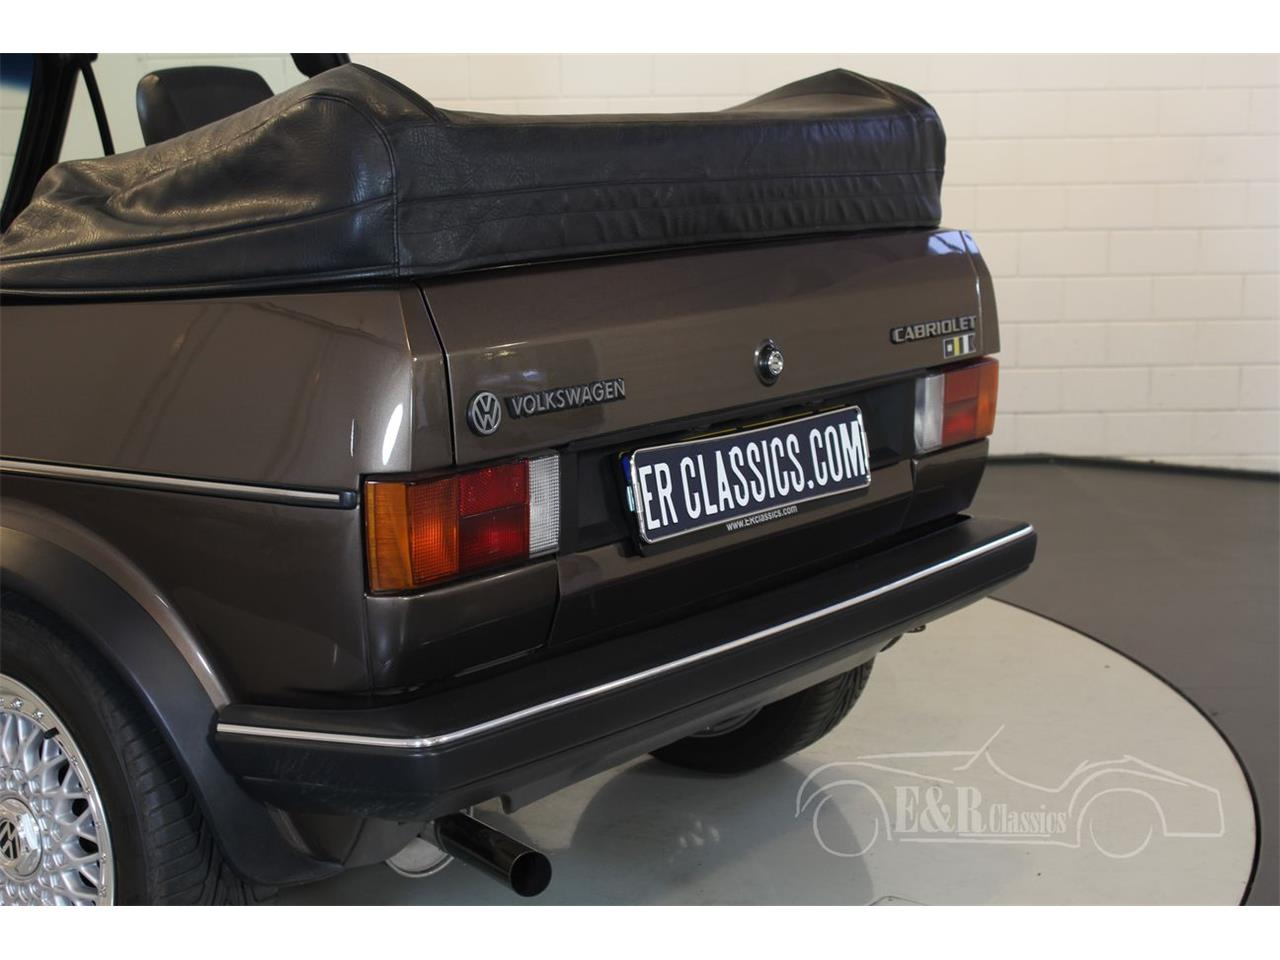 Large Picture of '84 Volkswagen Golf located in Waalwijk - Keine Angabe - - $19,100.00 - PH4B